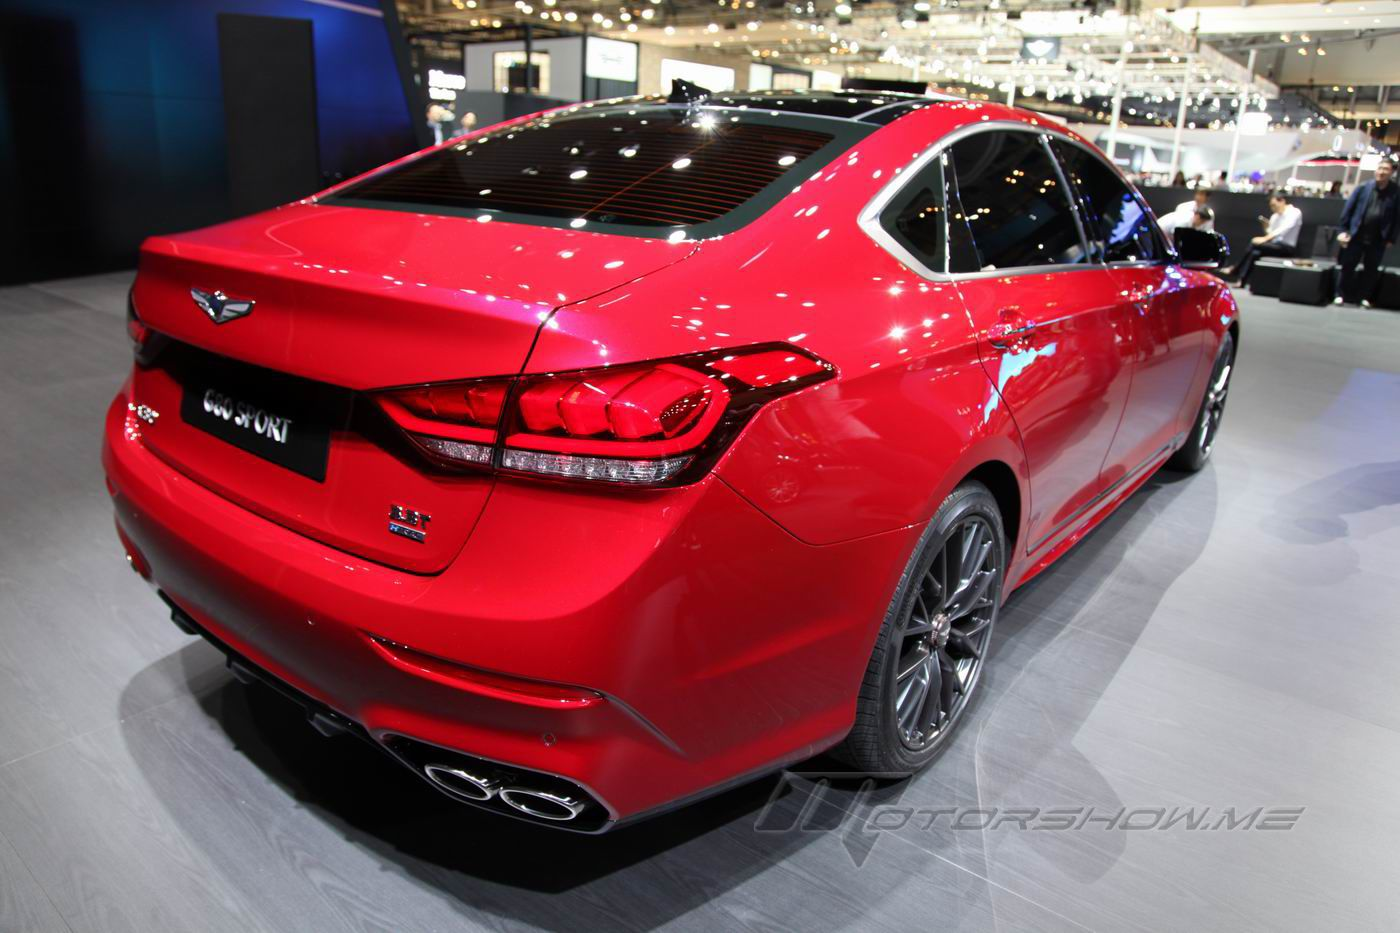 2016 Genesis G80 Sport Powered By A 370 Hp 3 3 Litre Twin